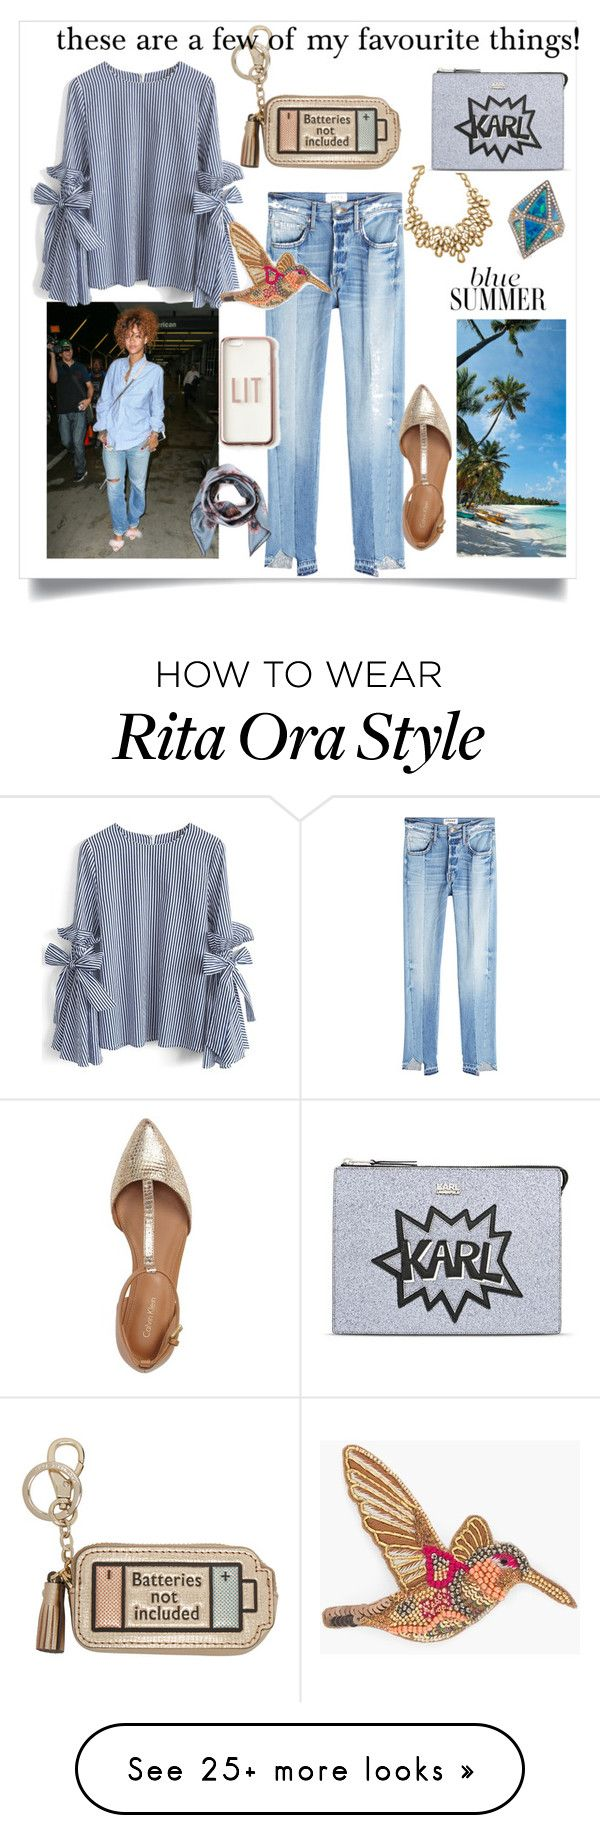 """""""These are a few of my favourite things!"""" by jennyharris168 on Polyvore featuring Chicwish, Oscar de la Renta, Frame, Anya Hindmarch, Calvin Klein, Noor Fares, Chico's, Karl Lagerfeld, Valentino and Missguided"""